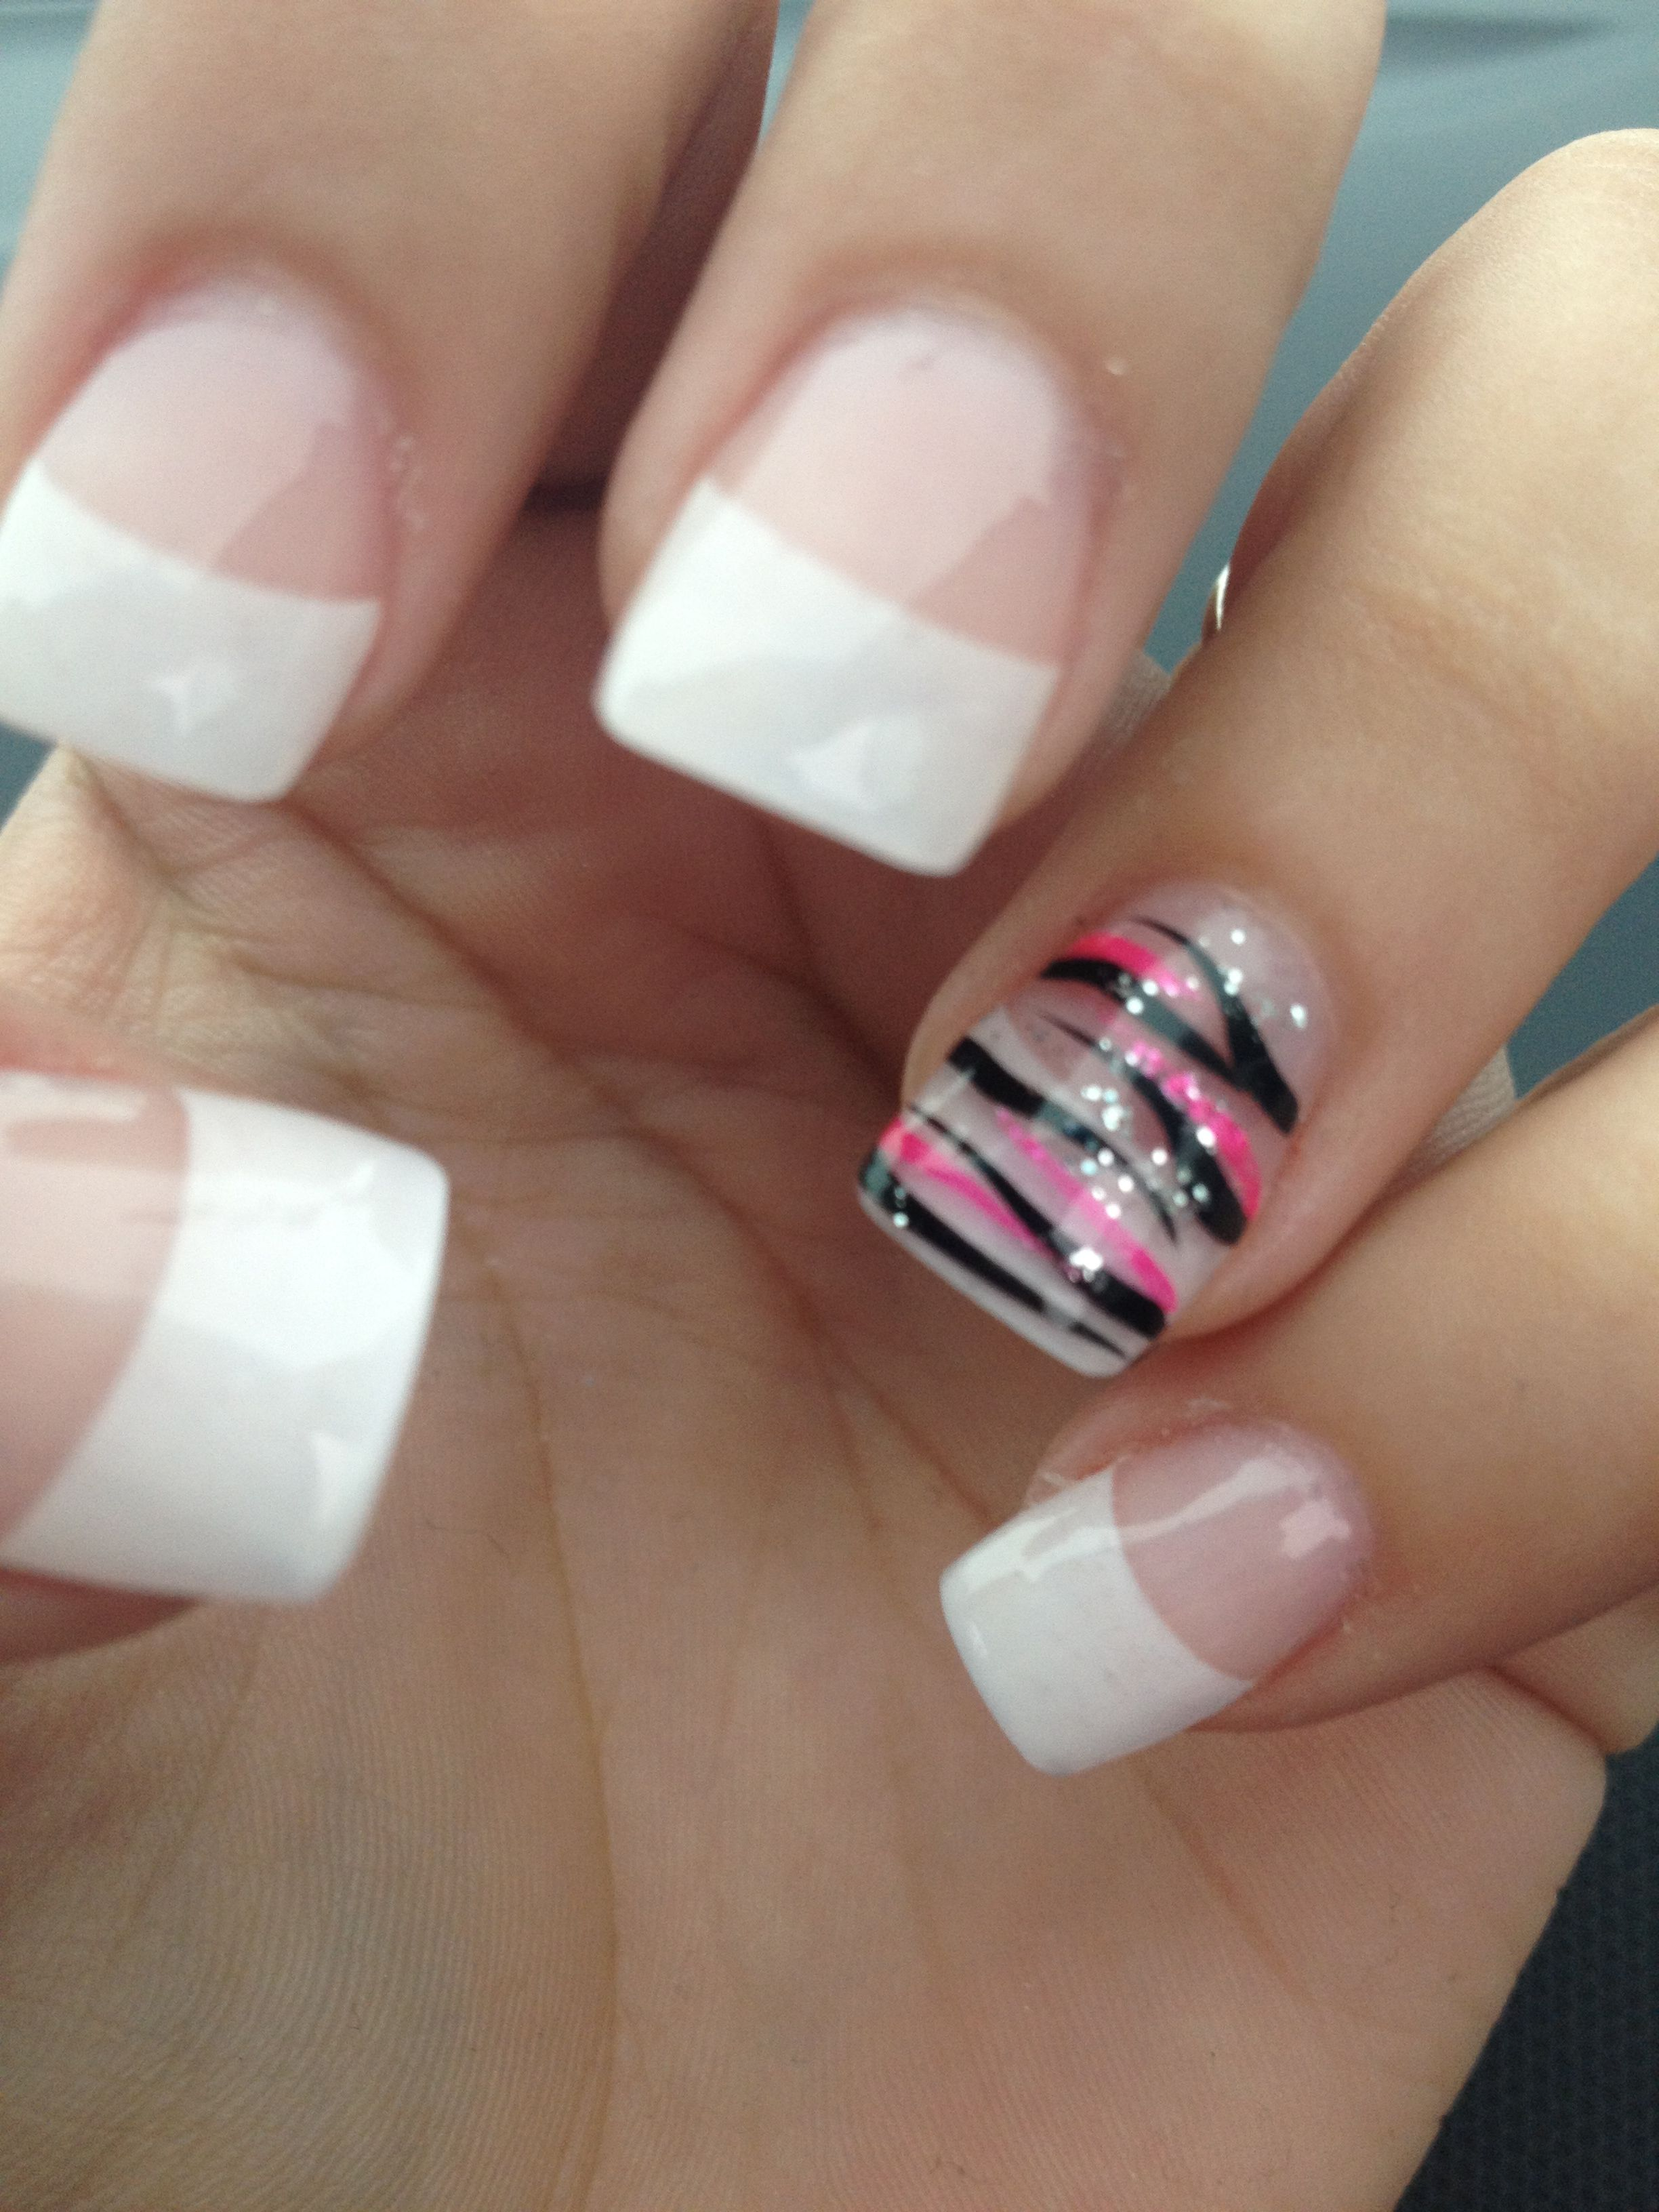 French tip with pink and black zebra stripes on ring finger i french tip with pink and black zebra stripes on ring finger i think i prinsesfo Image collections